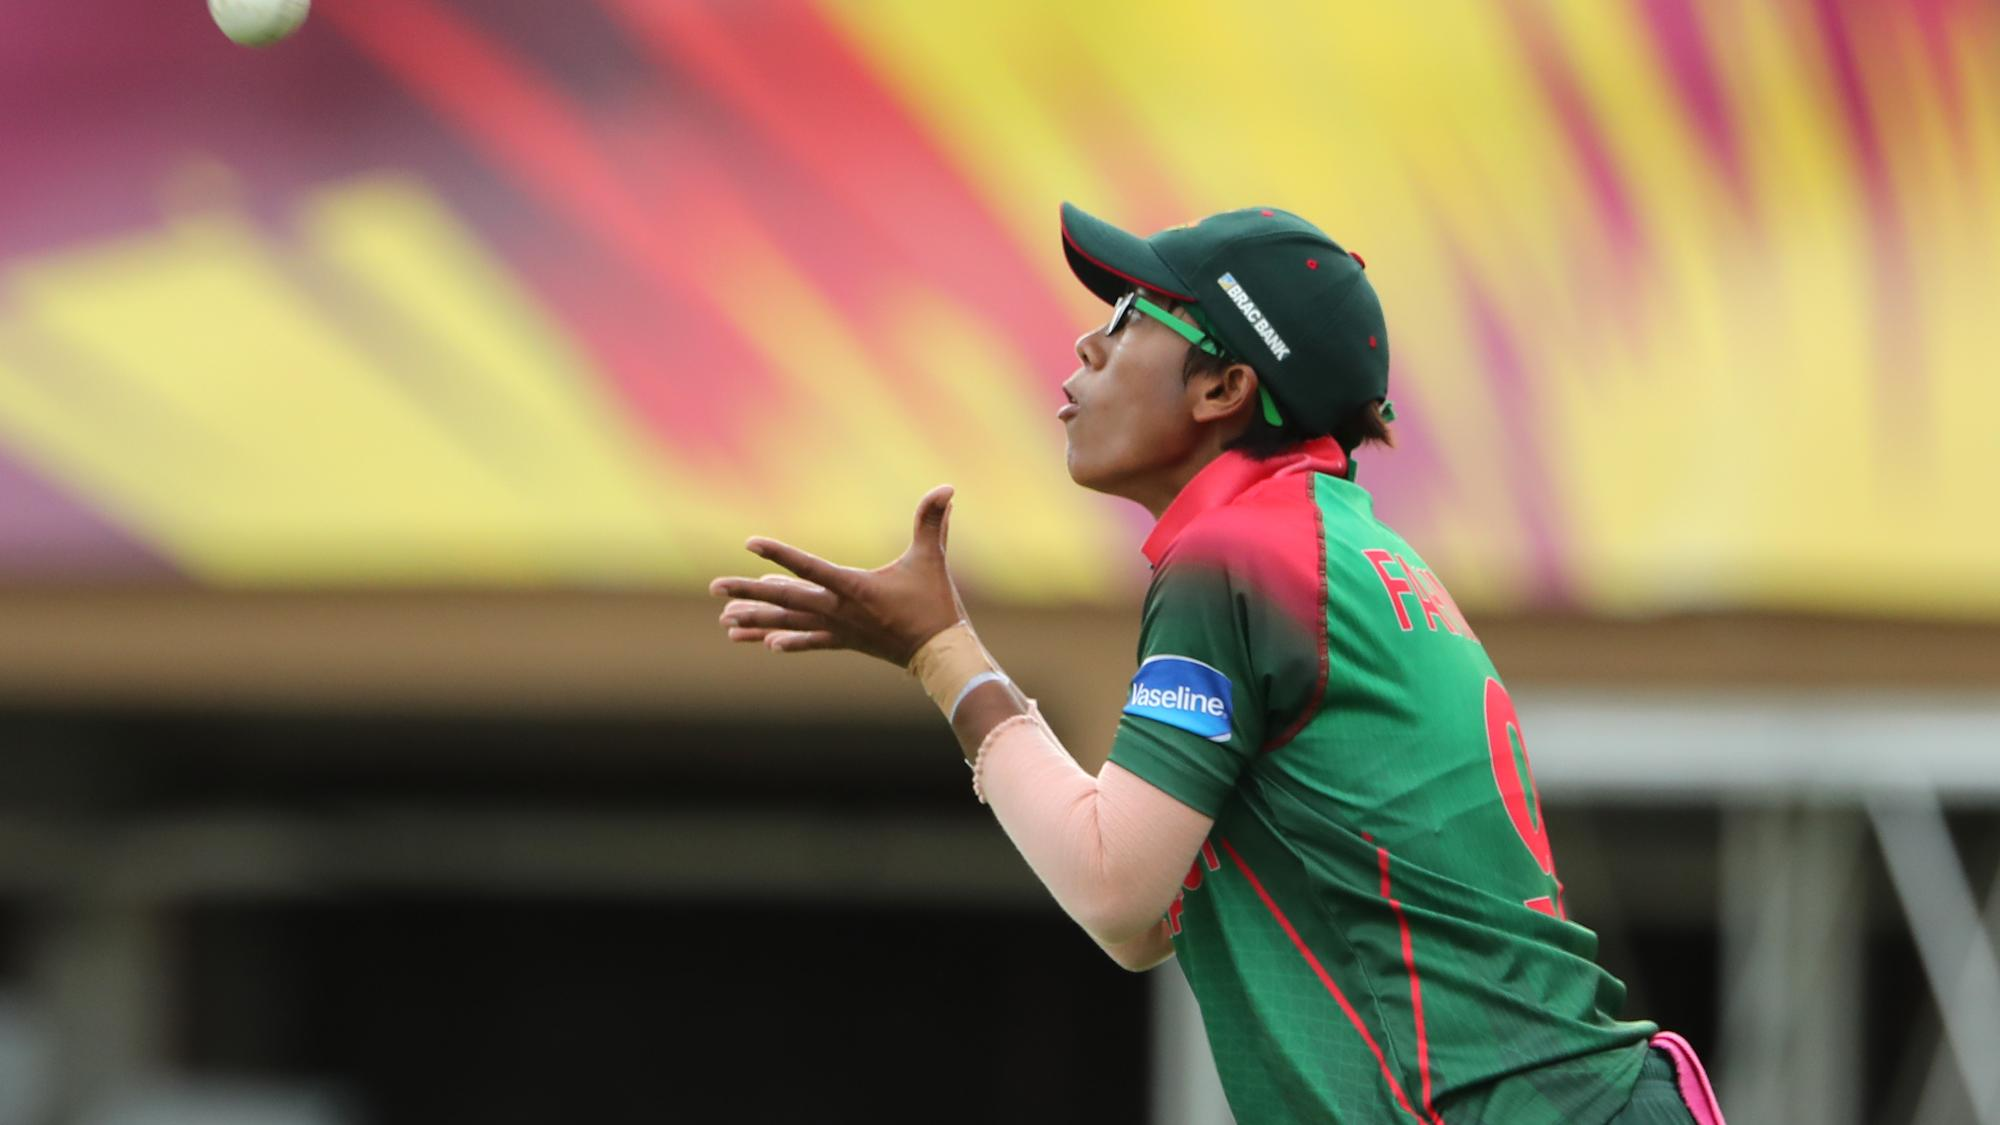 Fahima Khatun of Bangladesh settles under a catch during the ICC Women's World T20 warm up match between Bangladesh and Ireland on November 4, 2018 at the Guyana National Stadium in Providence, Guyana.